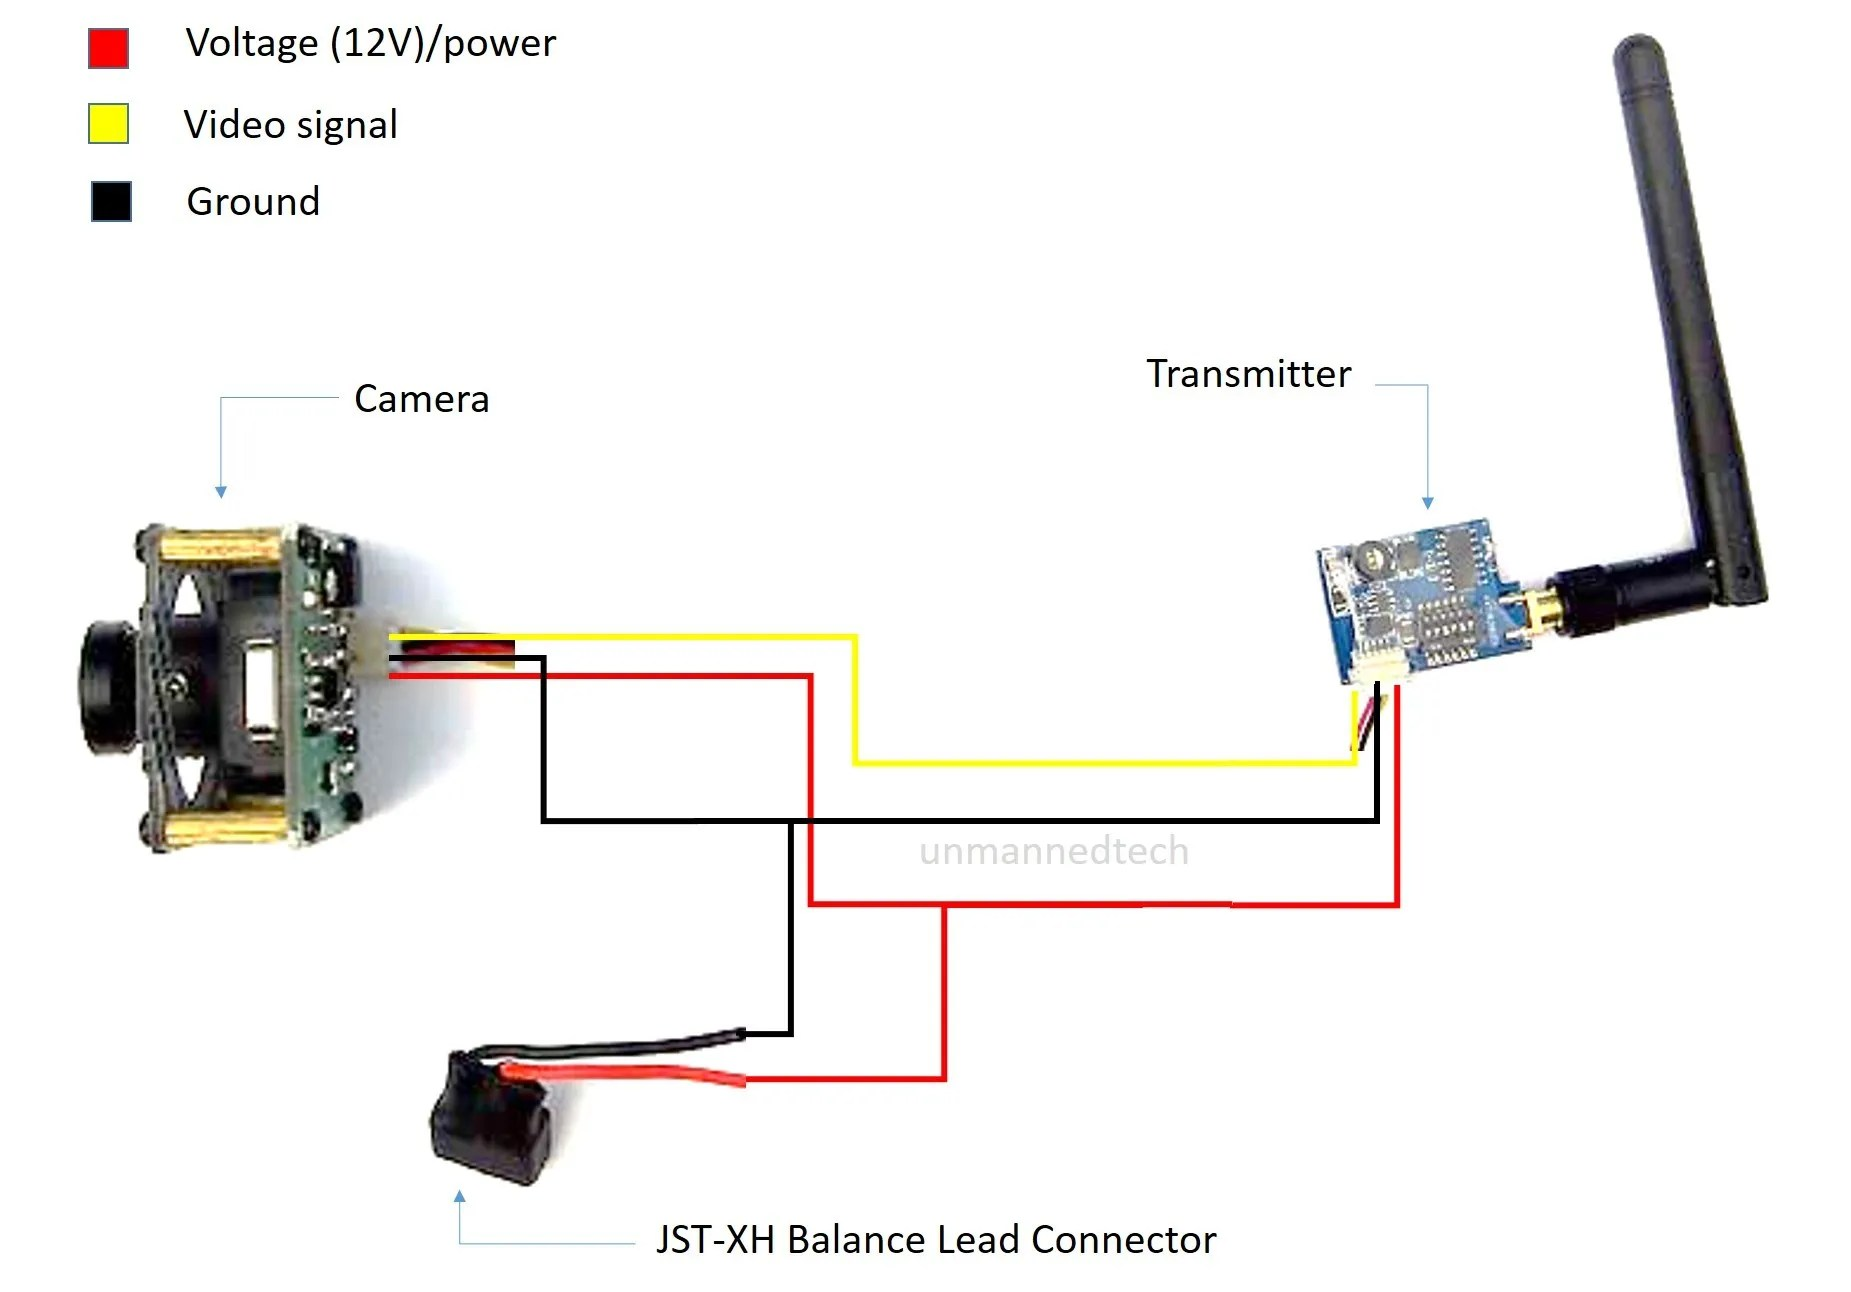 hight resolution of wiring diagram for drone camera wiring diagram blog drone and fpv wiring diagram